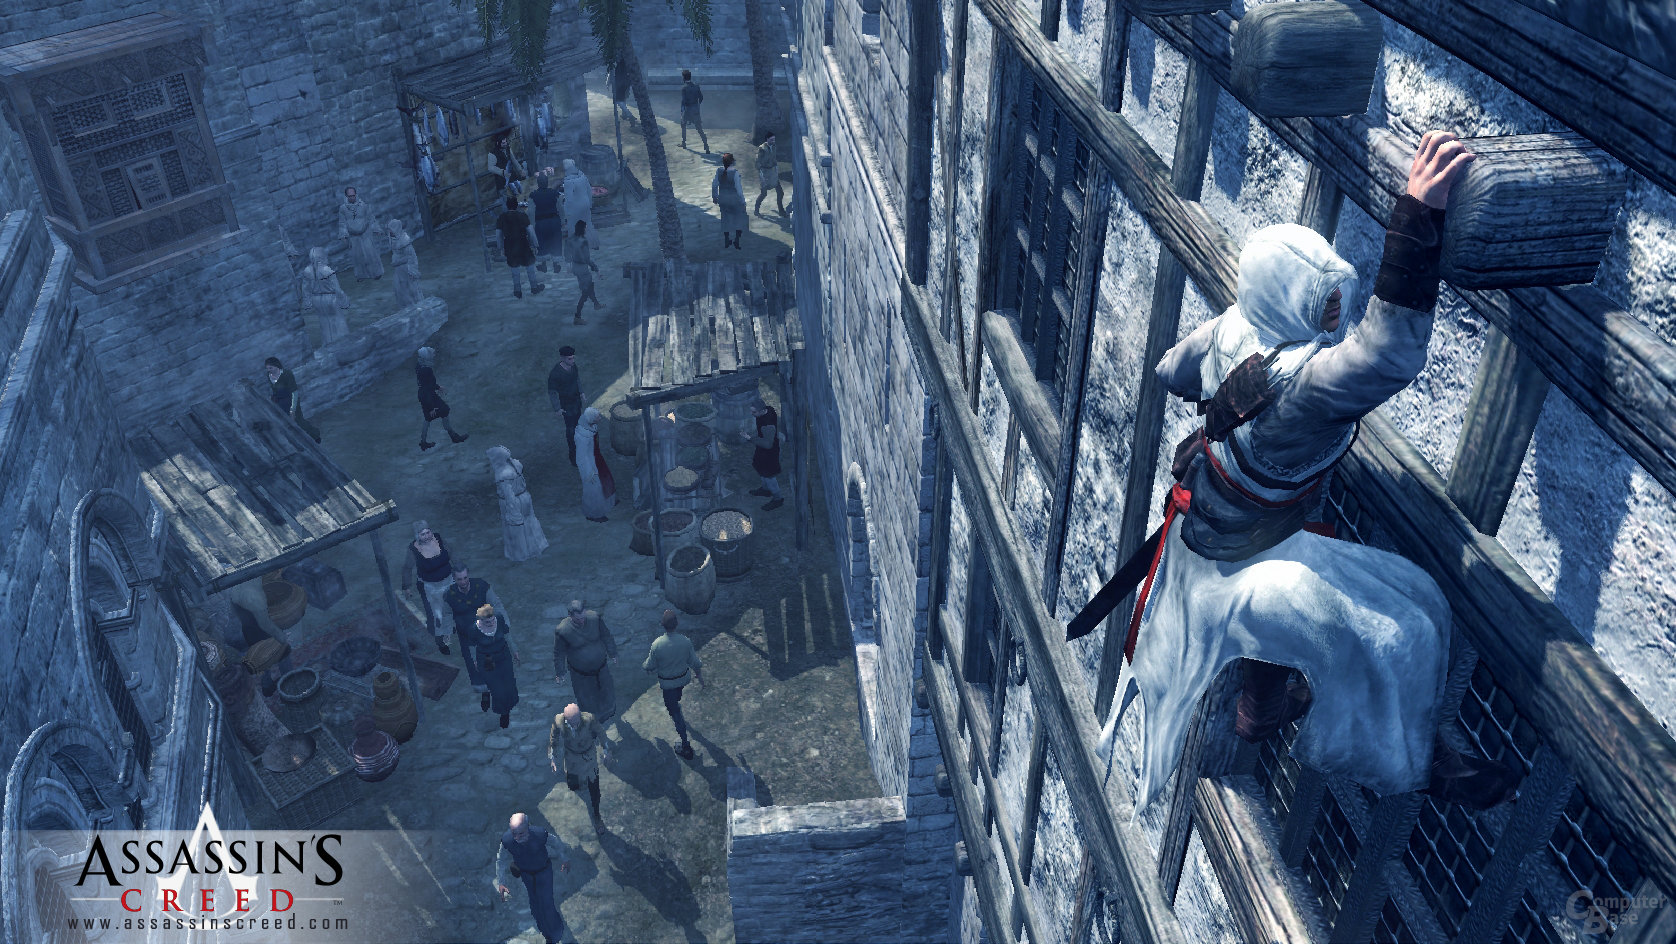 Assassin's Creed für Xbox 360